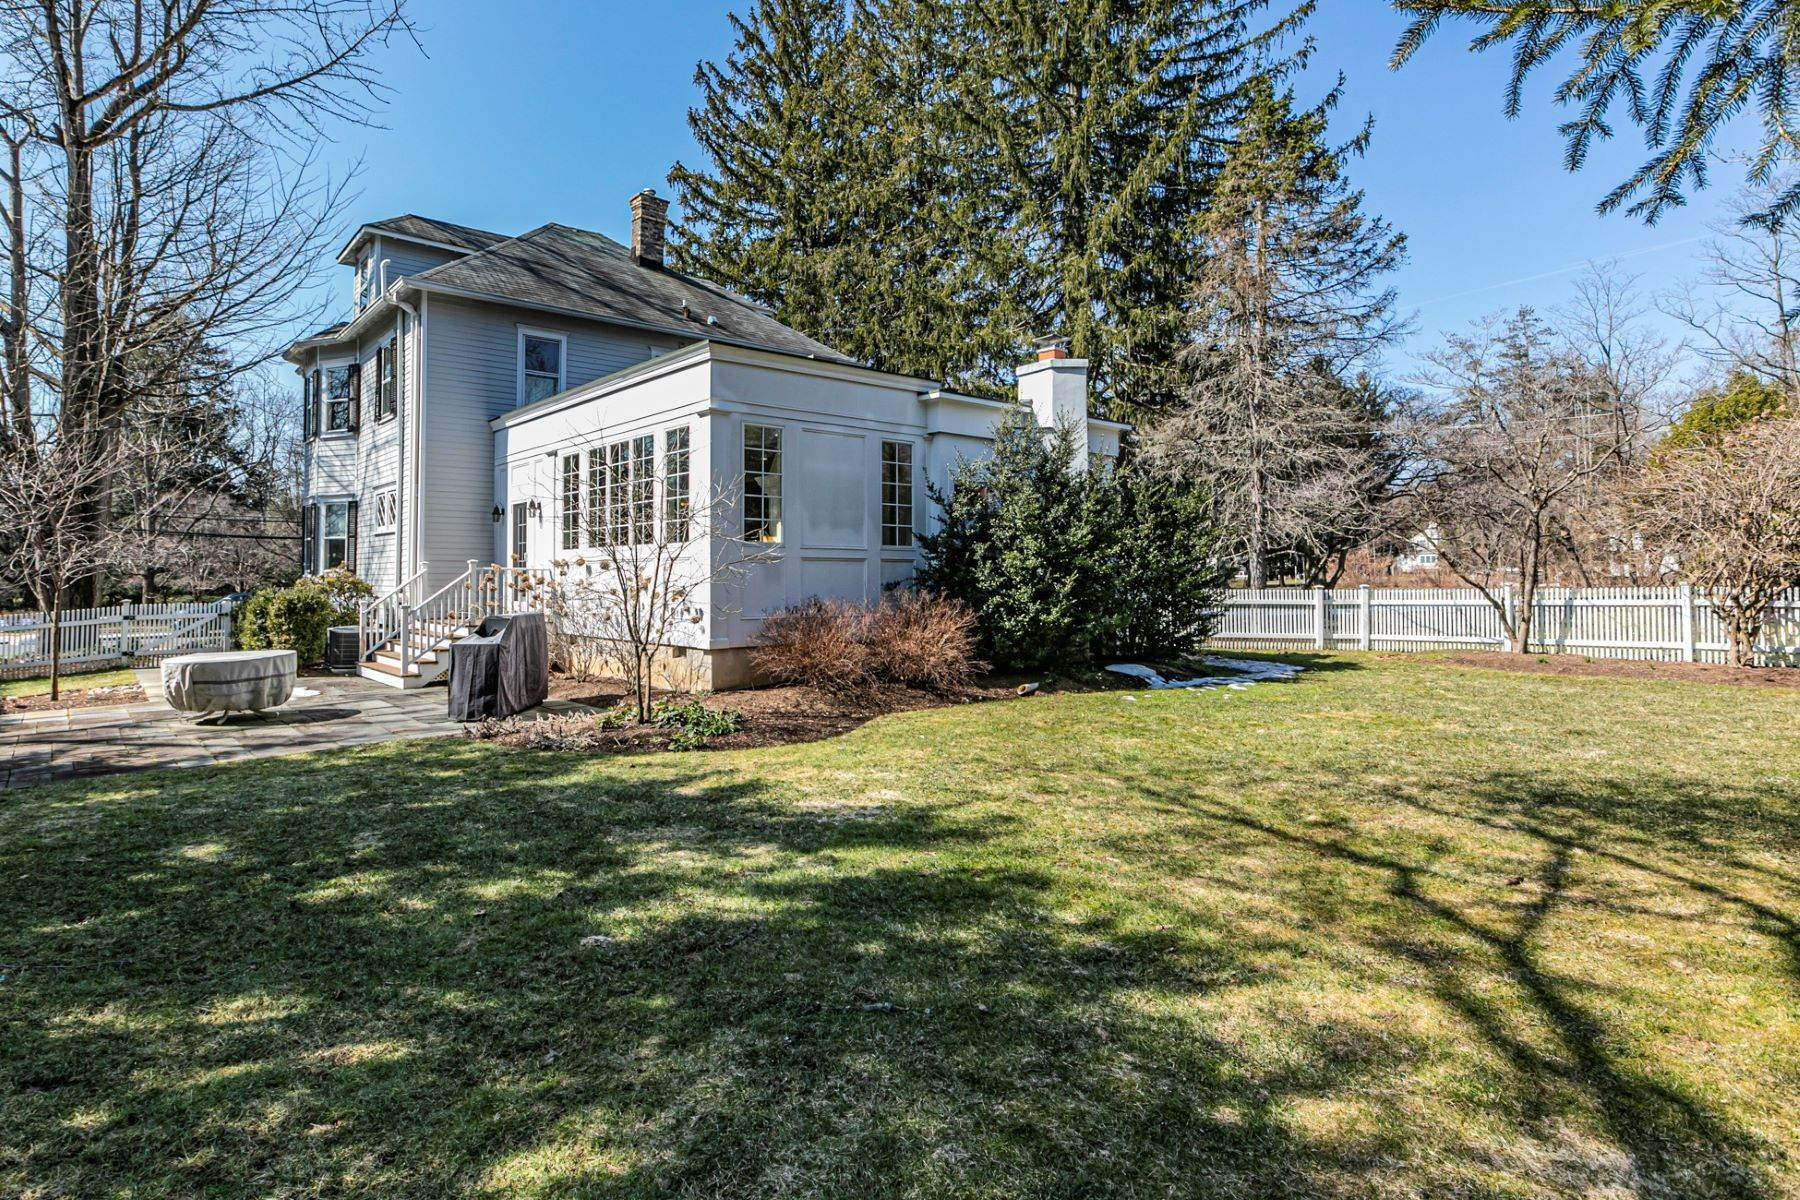 34. Single Family Homes for Sale at Picture Perfect Home Steps From Main Street 10 Green Avenue, Lawrenceville, New Jersey 08648 United States